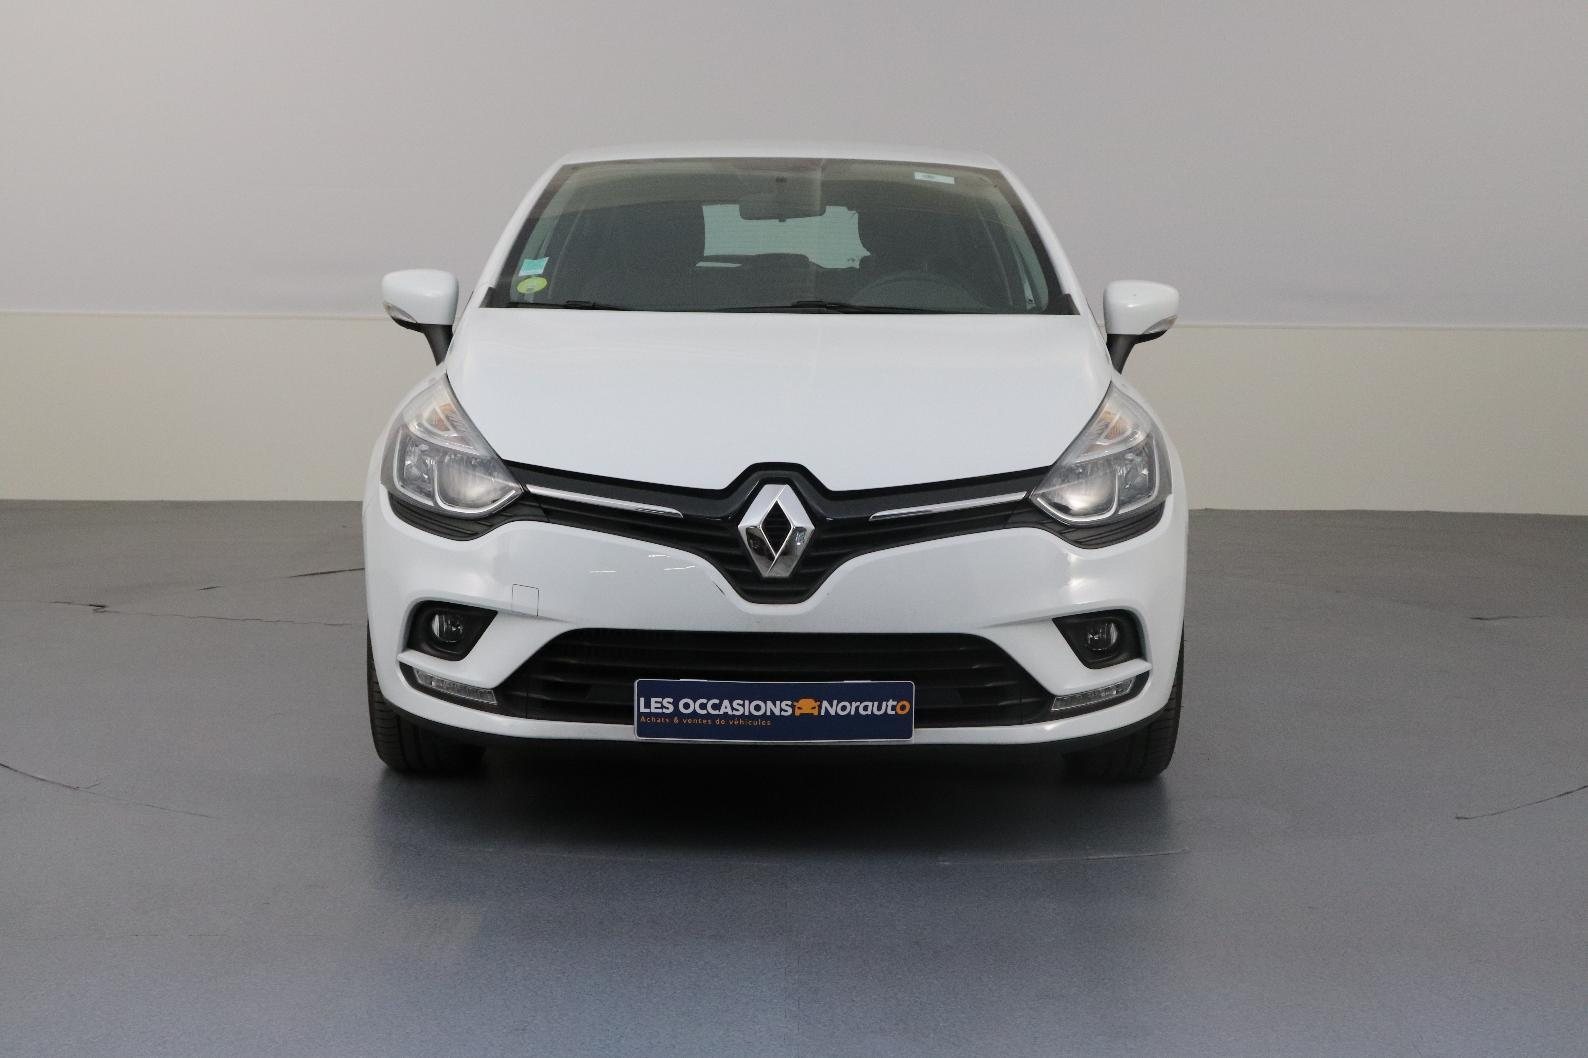 RENAULT CLIO IV BUSINESS Clio dCi 90 Energy 82g Business